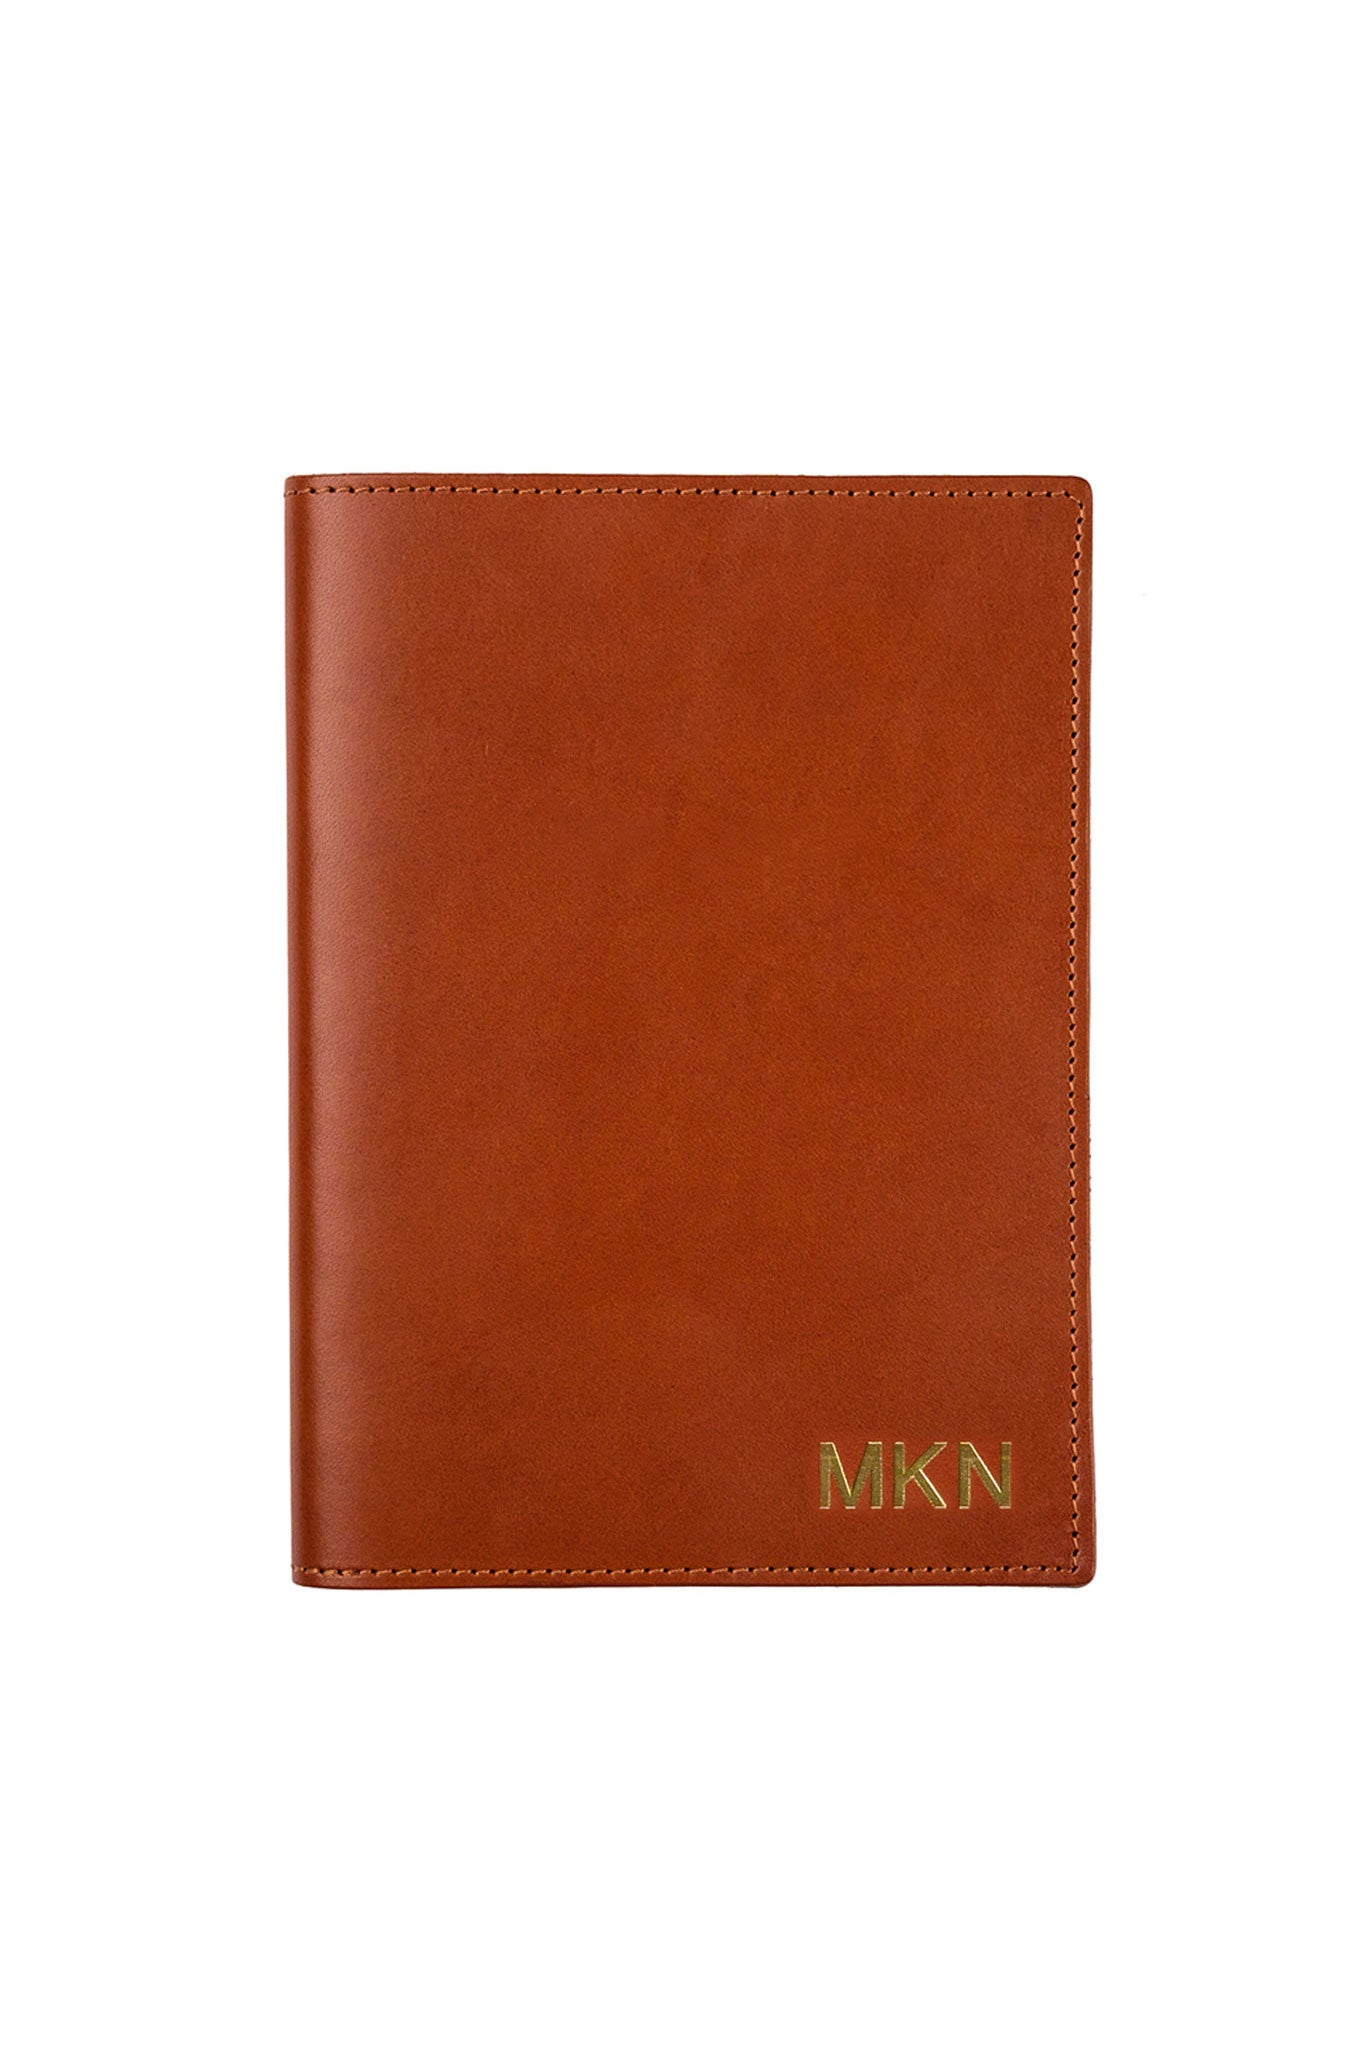 FOTO | Cognac Leather Journal for Business - refillable genuine leather journal cover can be personalized with gold foil initials, a monogram or business logo making it the perfect personalized gift.